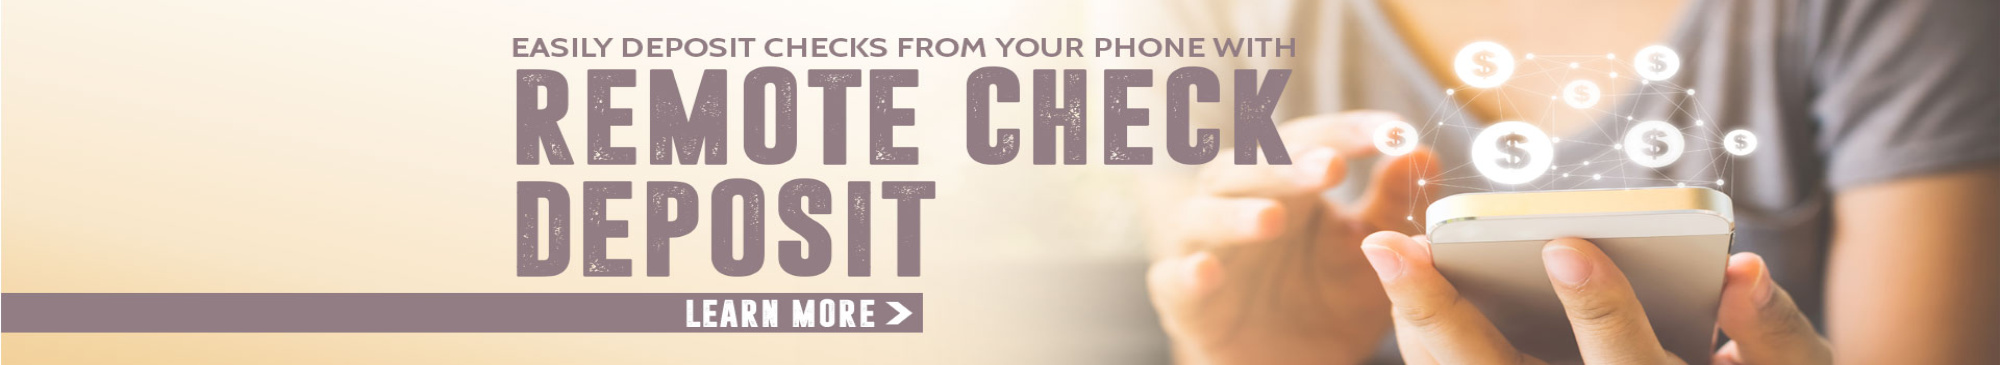 Woman holding cell phone, Remote check deposit